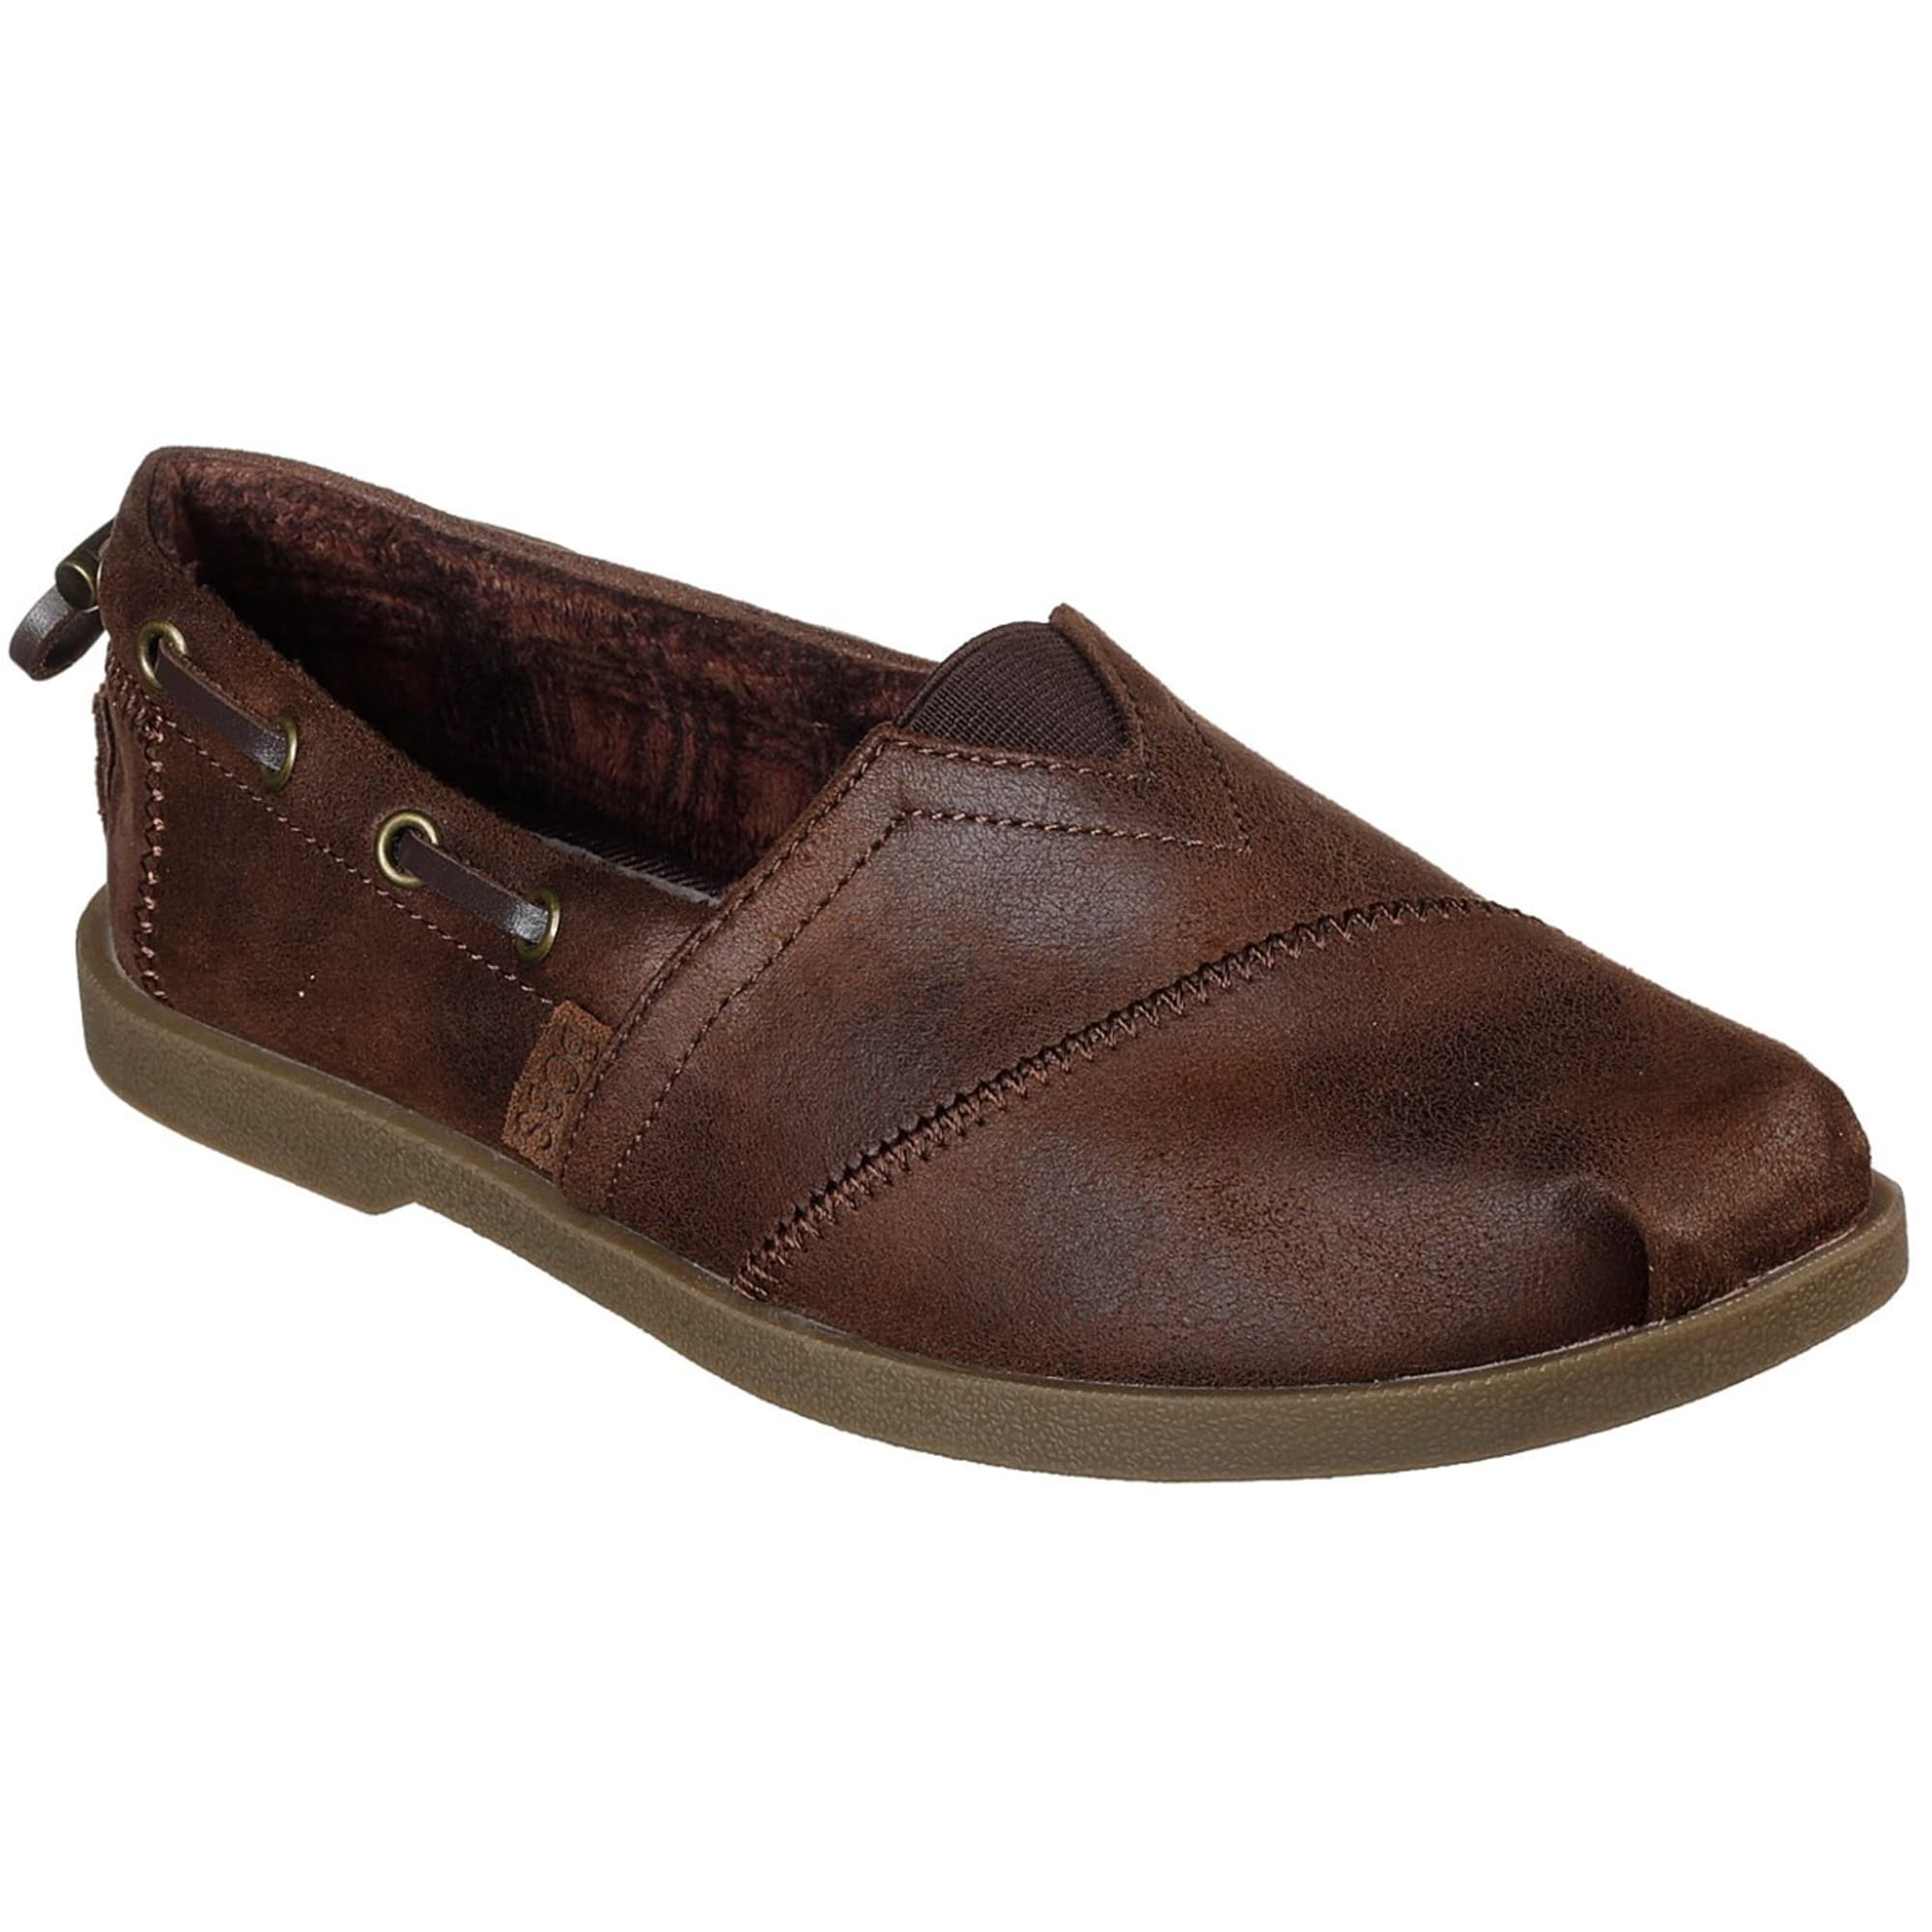 SKECHERS Women's Bobs Chill Luxe Buttoned Up Casual Slip On Shoes